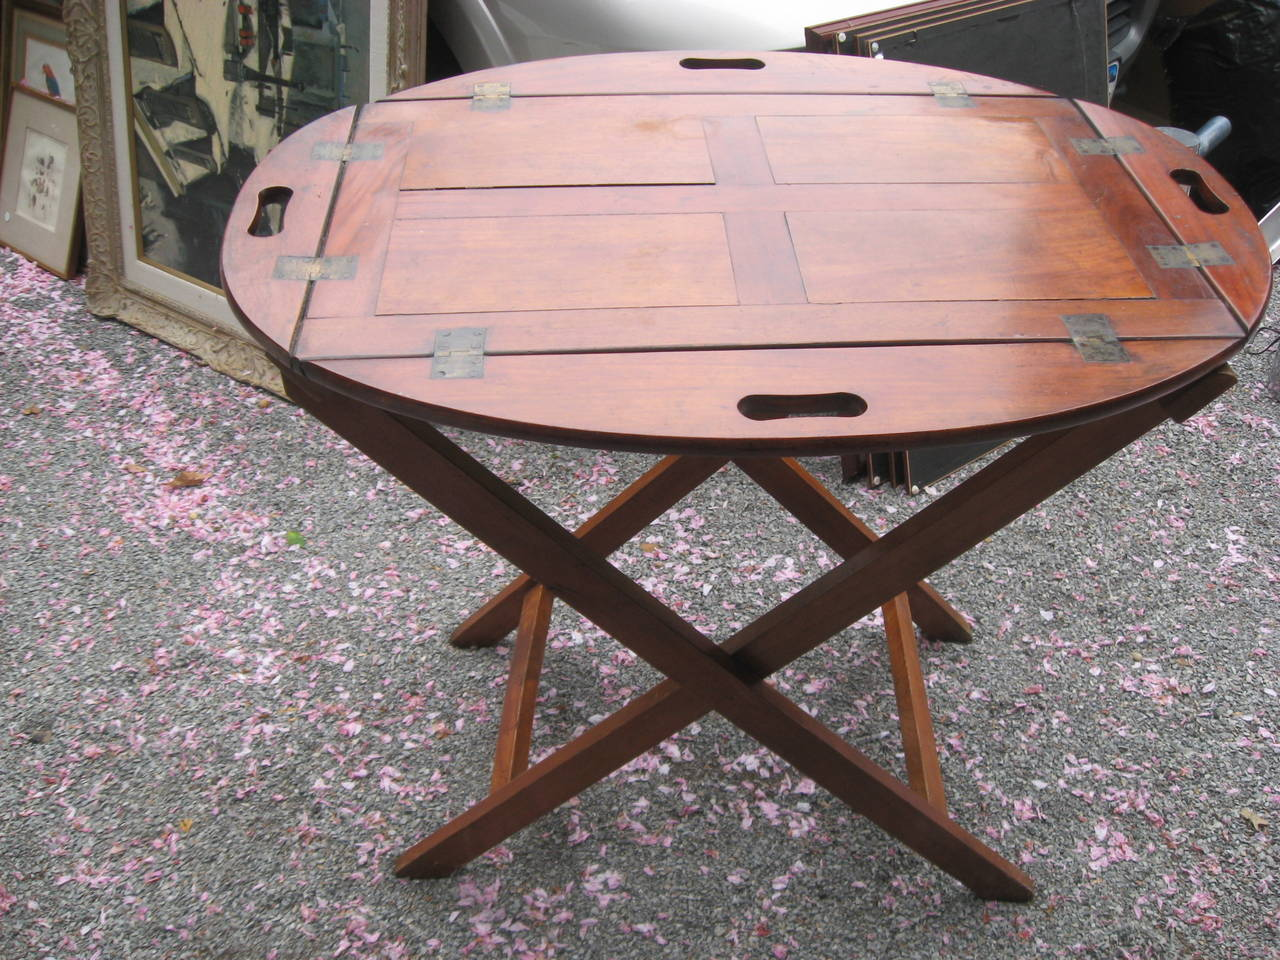 19th century English mahogany butlers tray table on a bar height stand with brass hinges.